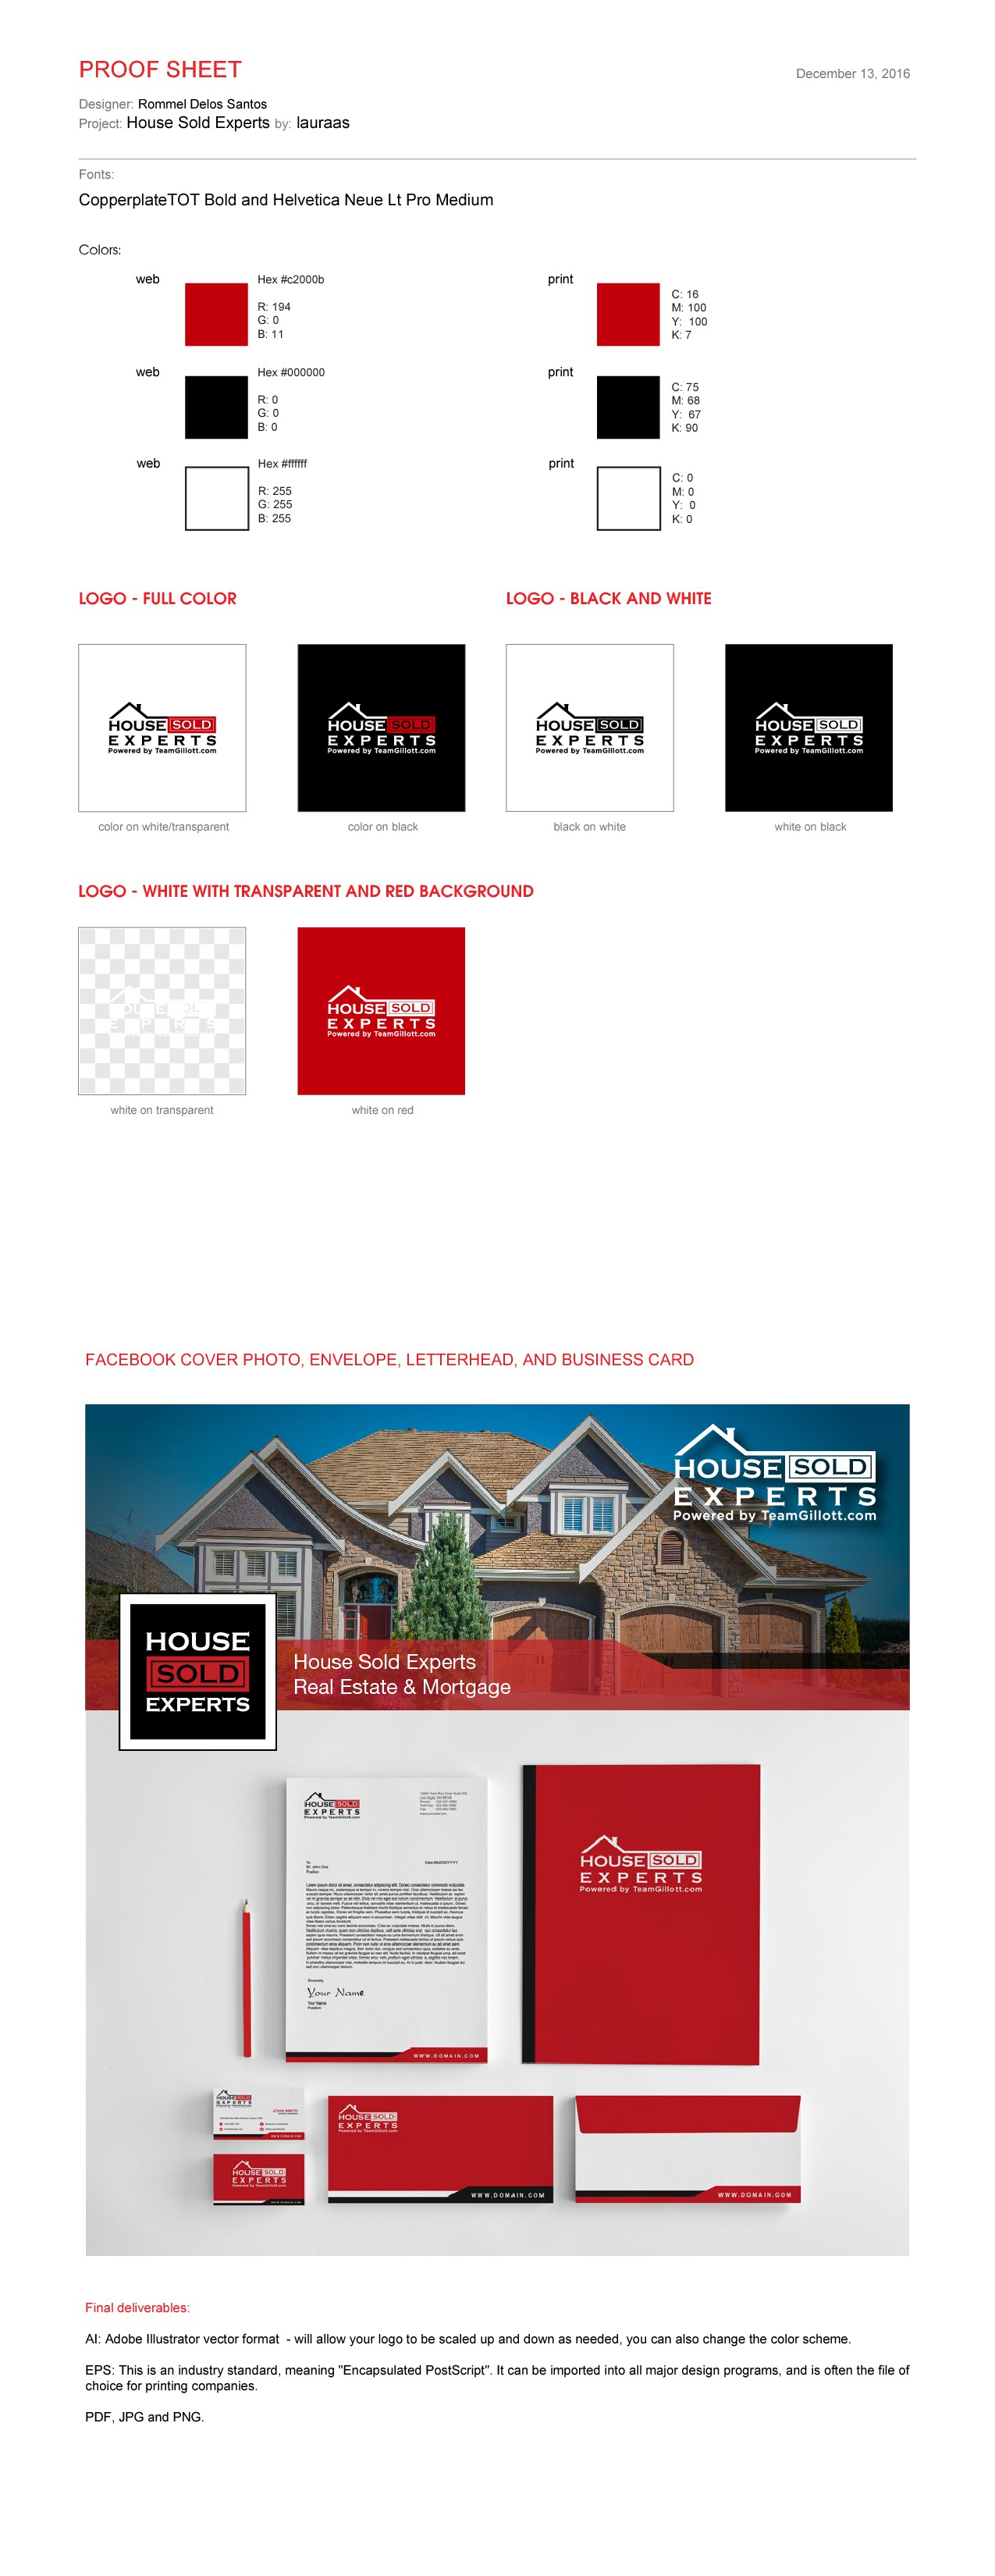 Design for the #1 Real Estate Team in Oregon...Be Seen!!